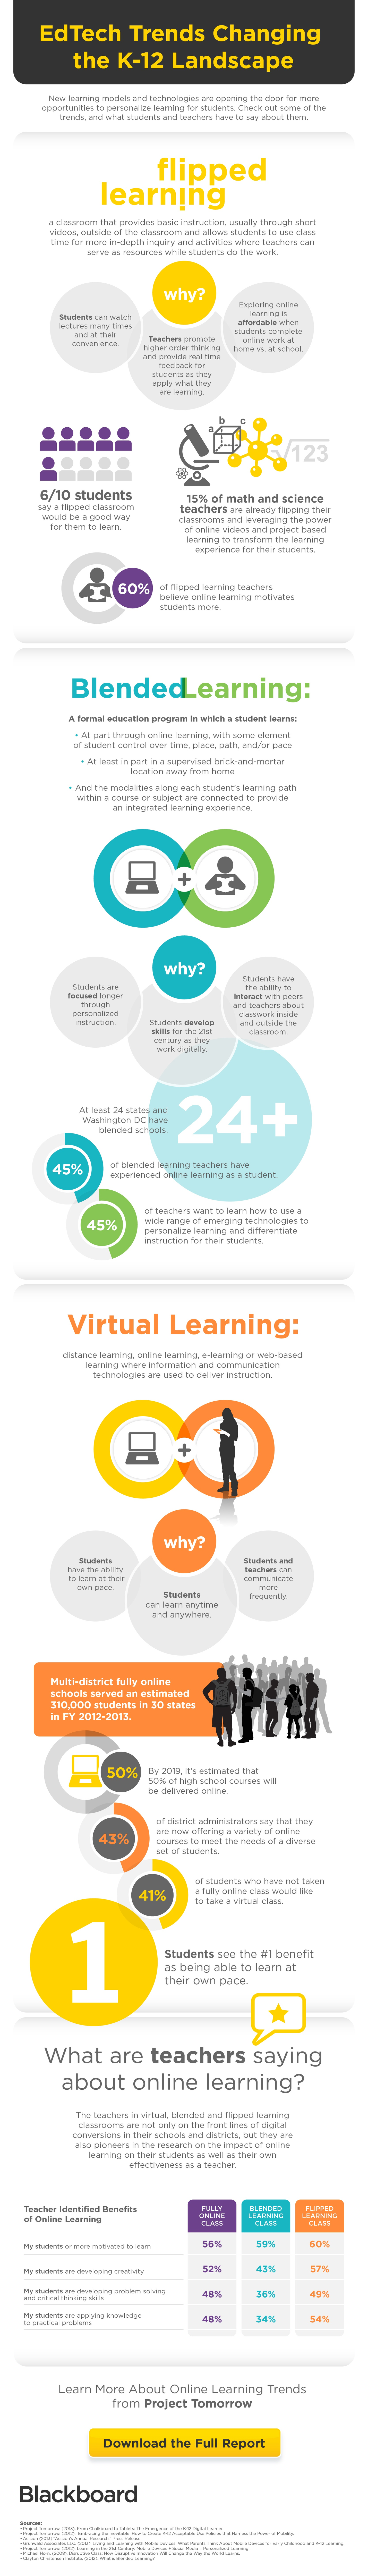 Edtech Trends Changing The K12 Landscape Infographic E